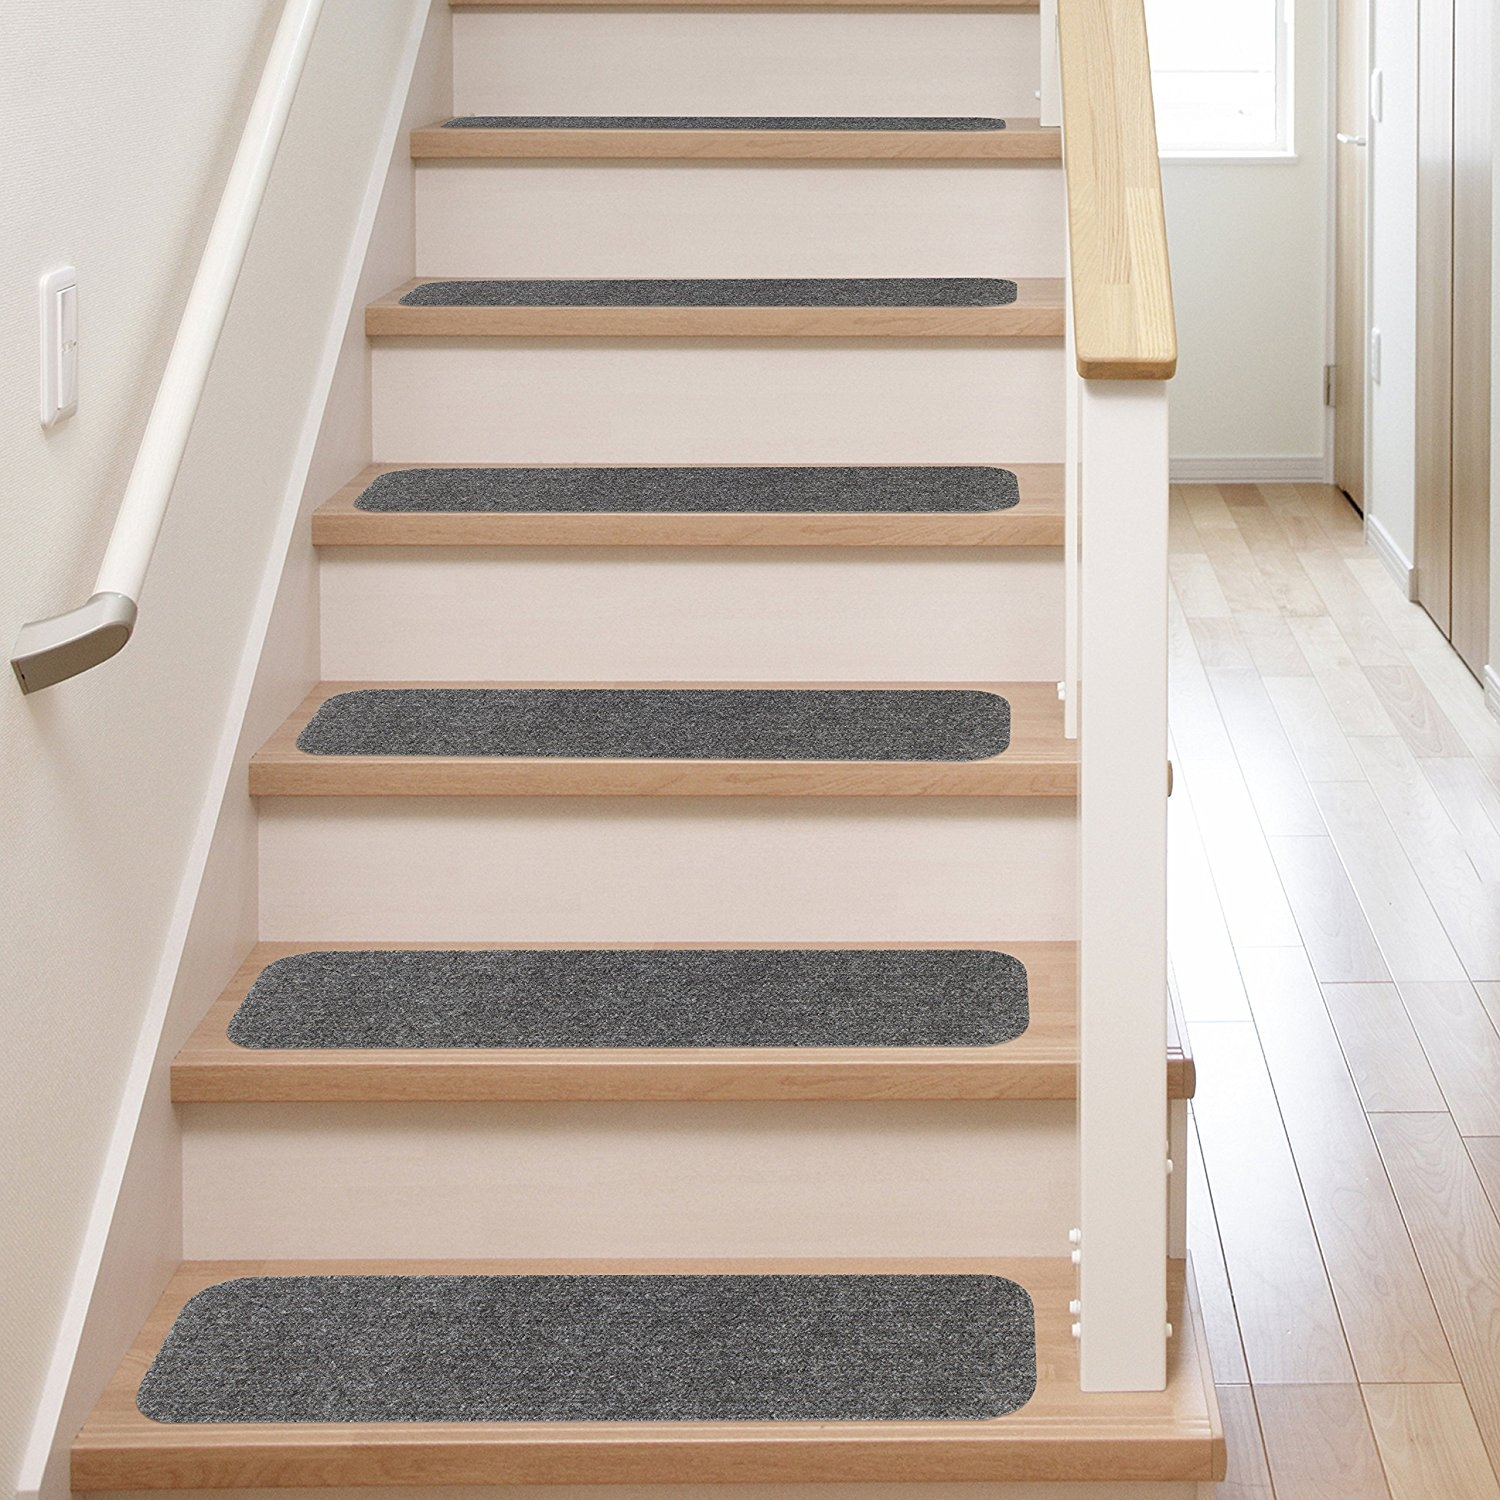 Etonnant 13 Stair Treads Non Slip Carpet Pads Easy Tape Installation Intended For  Carpet Step Covers For